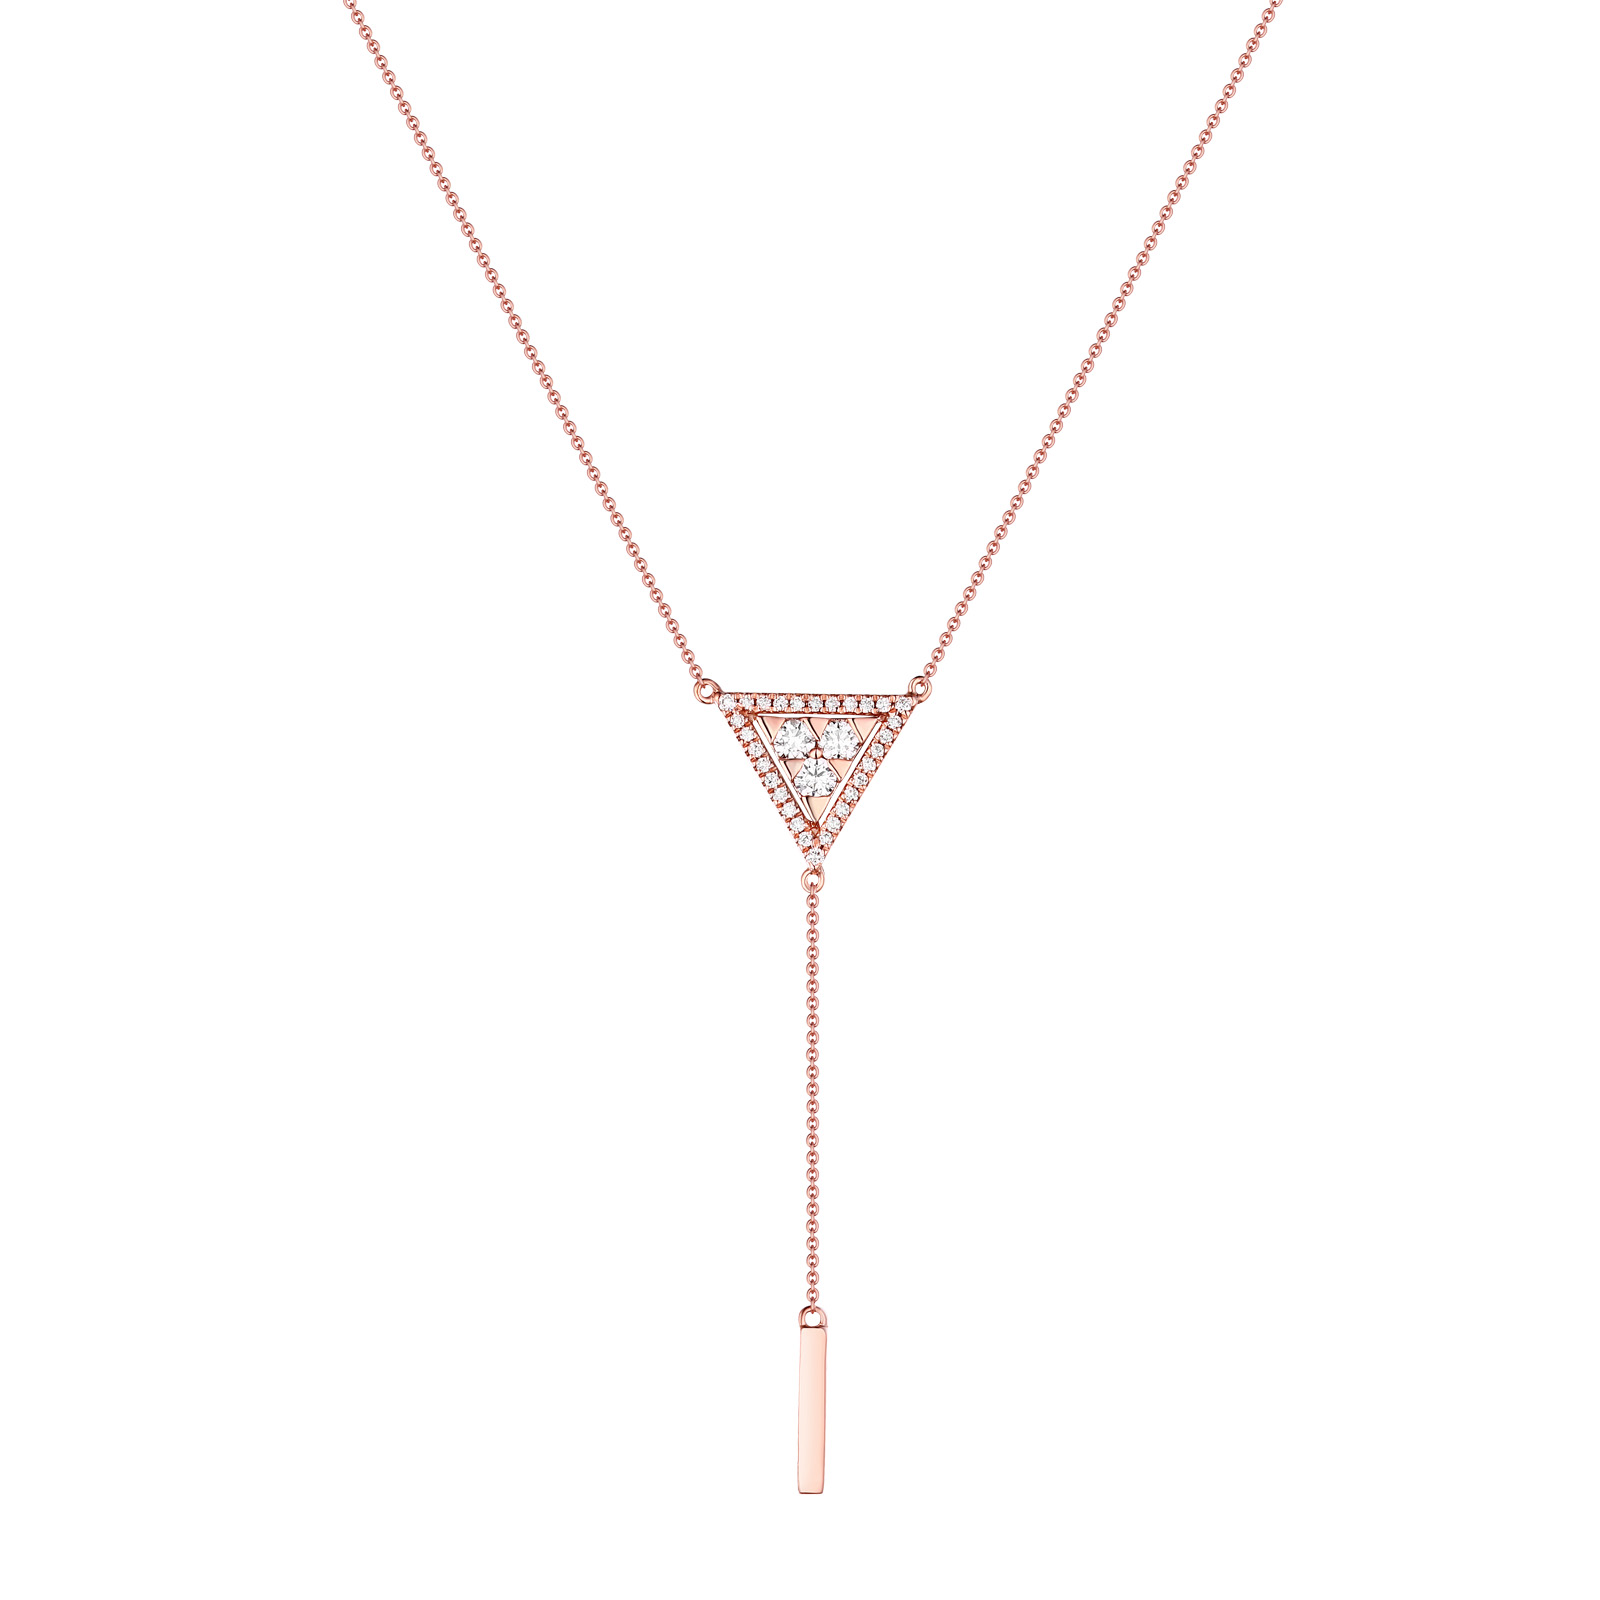 NL26427WHT- 14K Rose Gold Diamond Necklace, 0.25 TCW